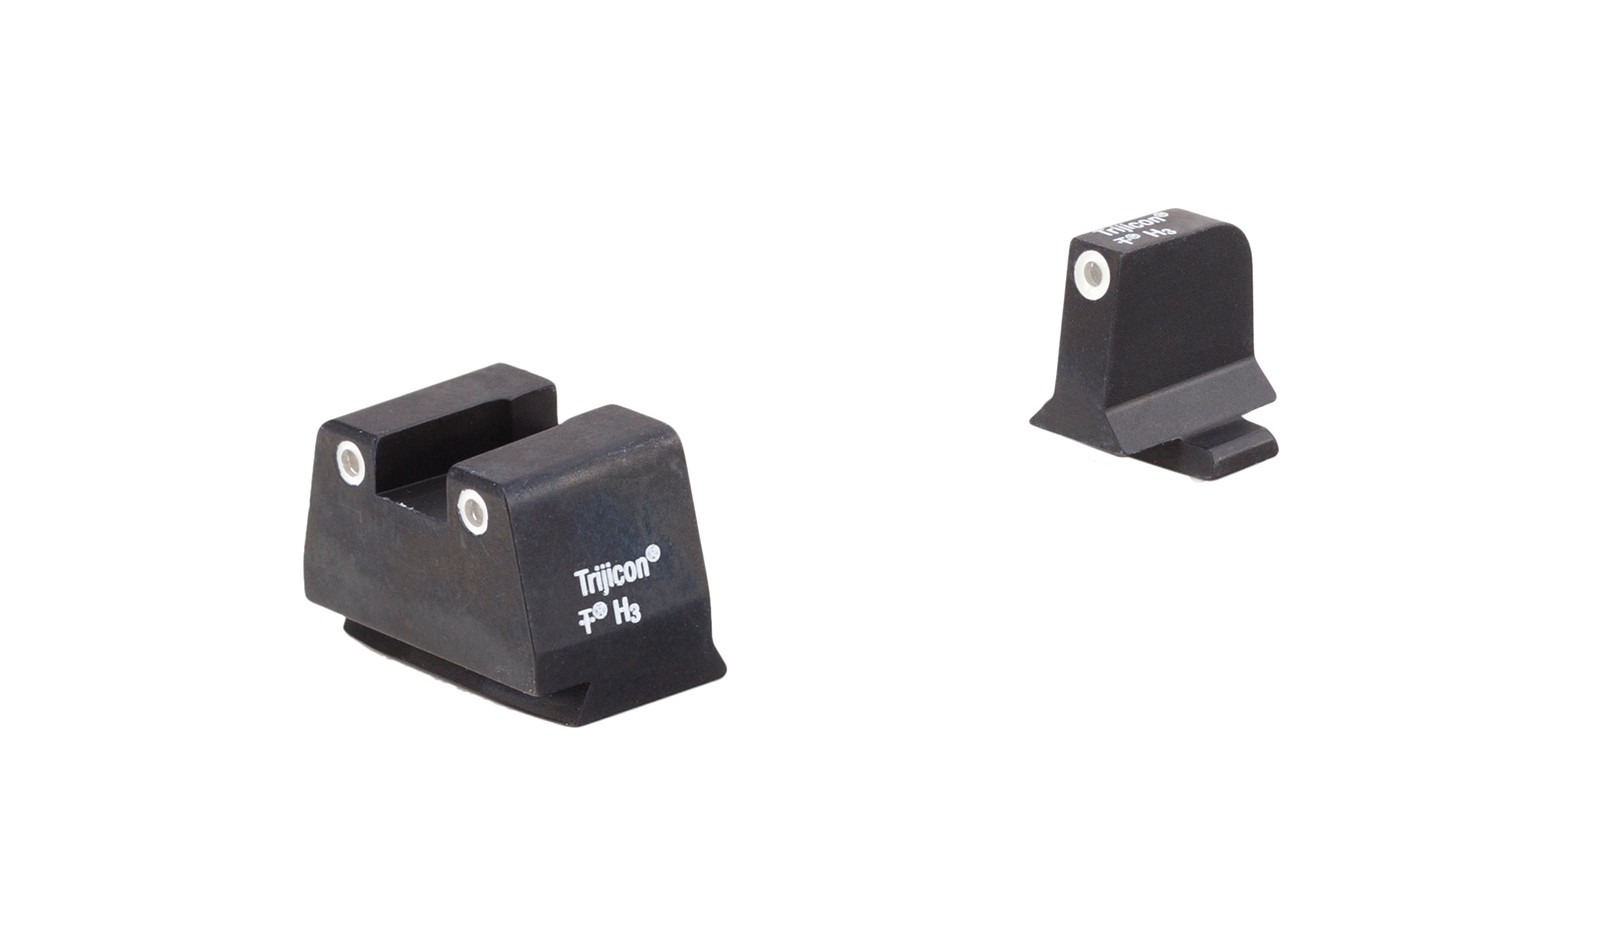 Trijicon Bright & Tough™ Suppressor Night Sights - FNX-45, FNP-45